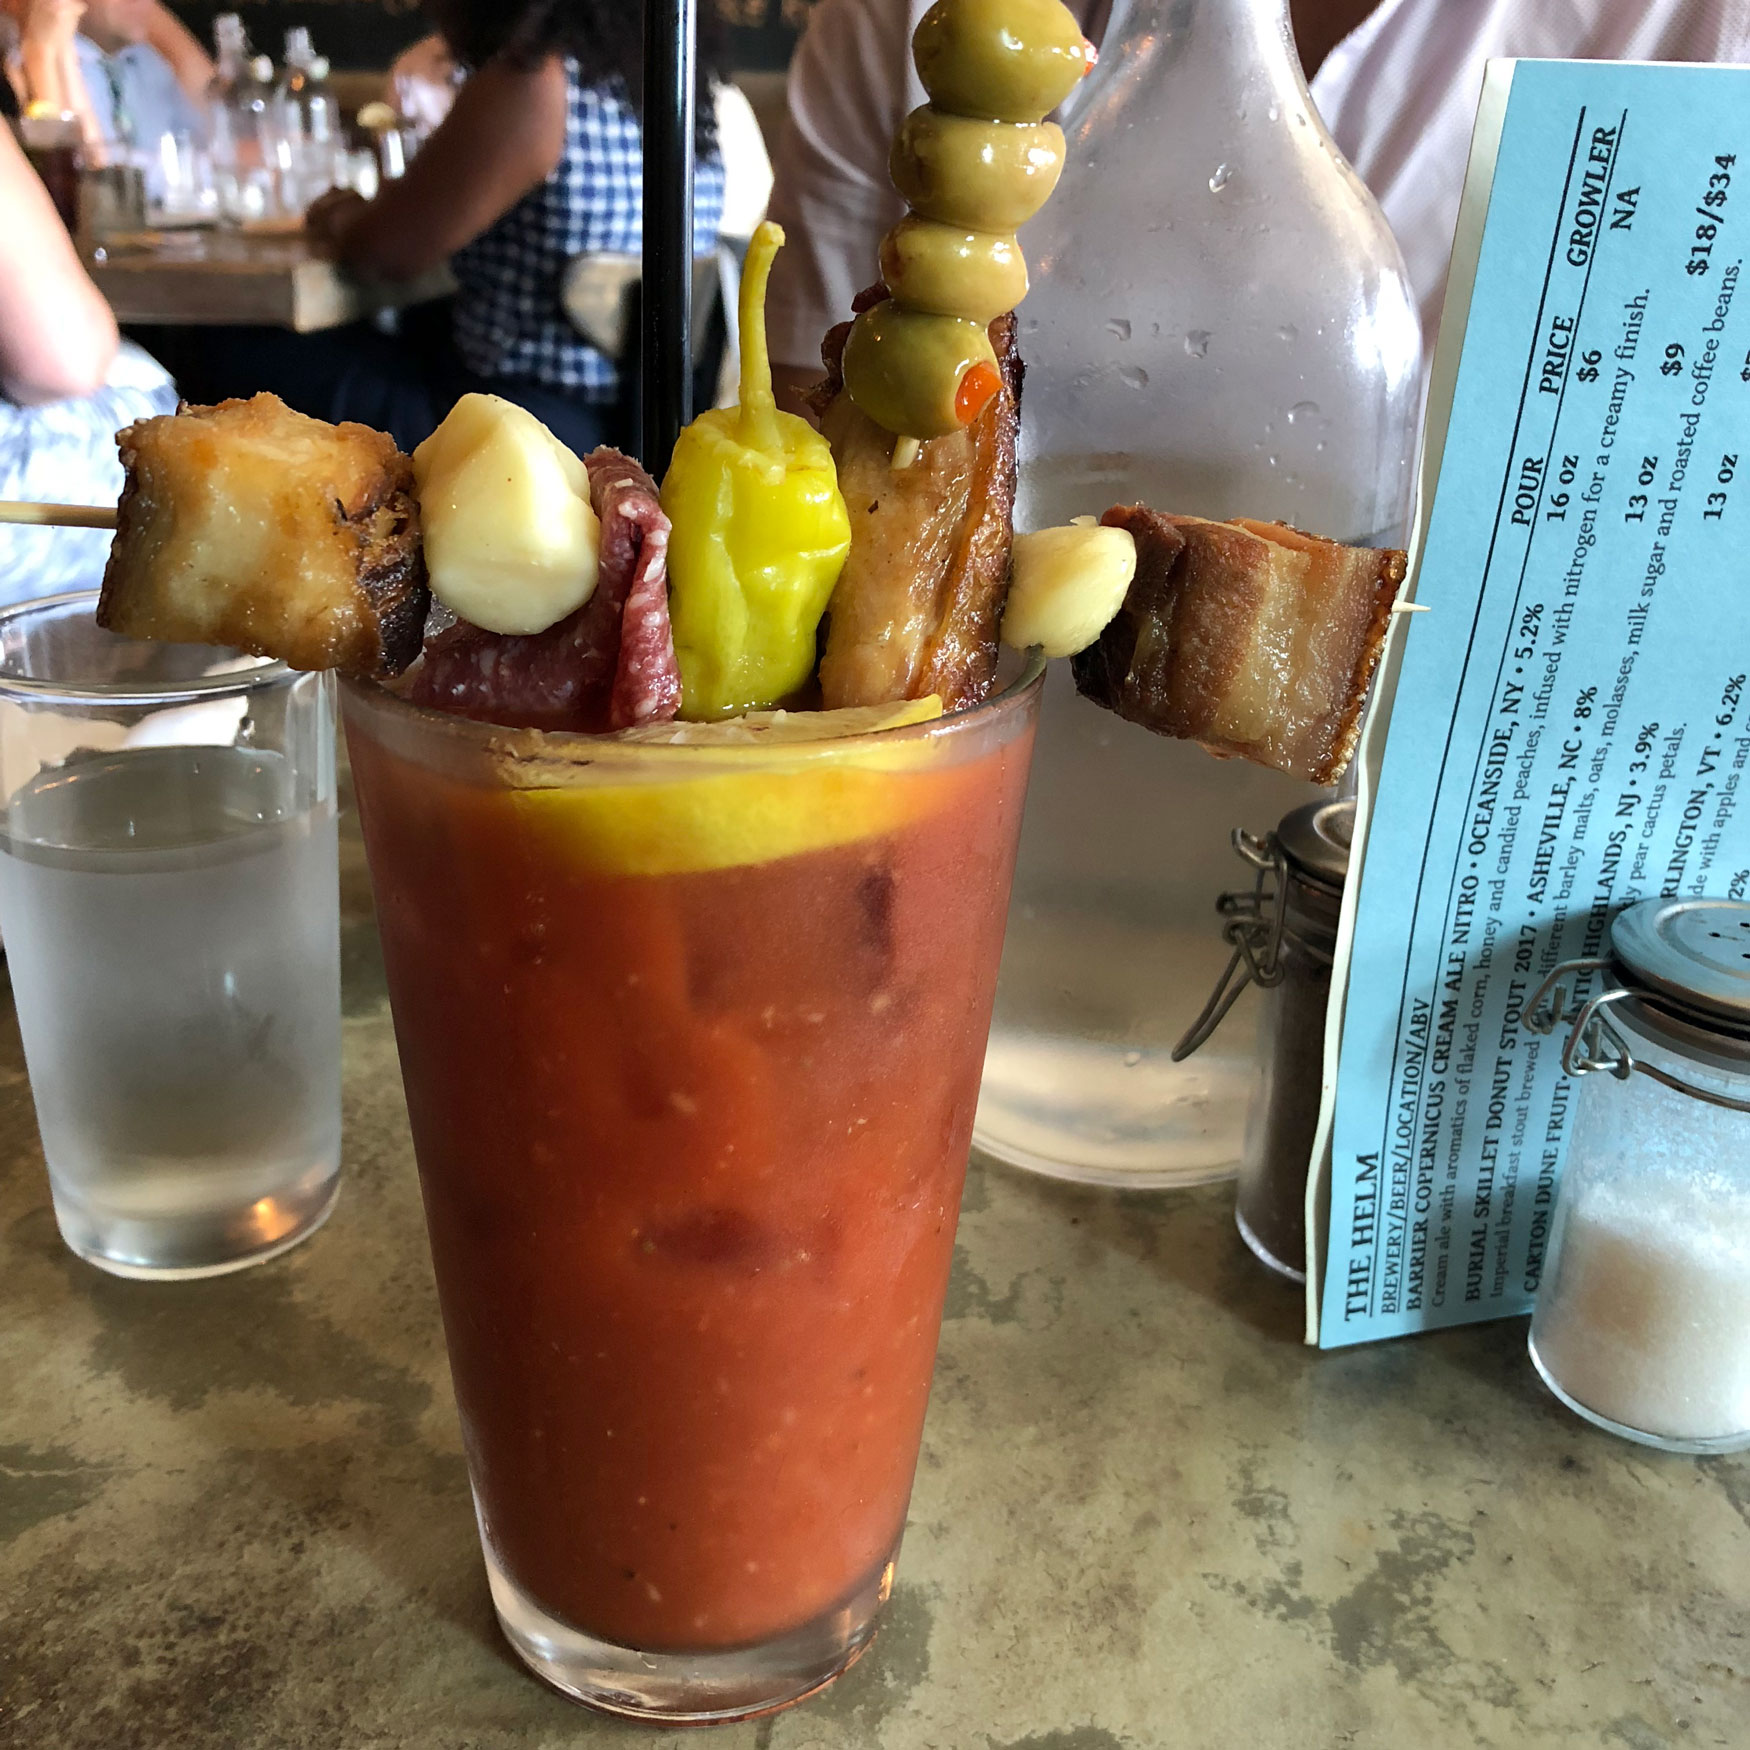 A Bloody Mary at the Helm Restaurant